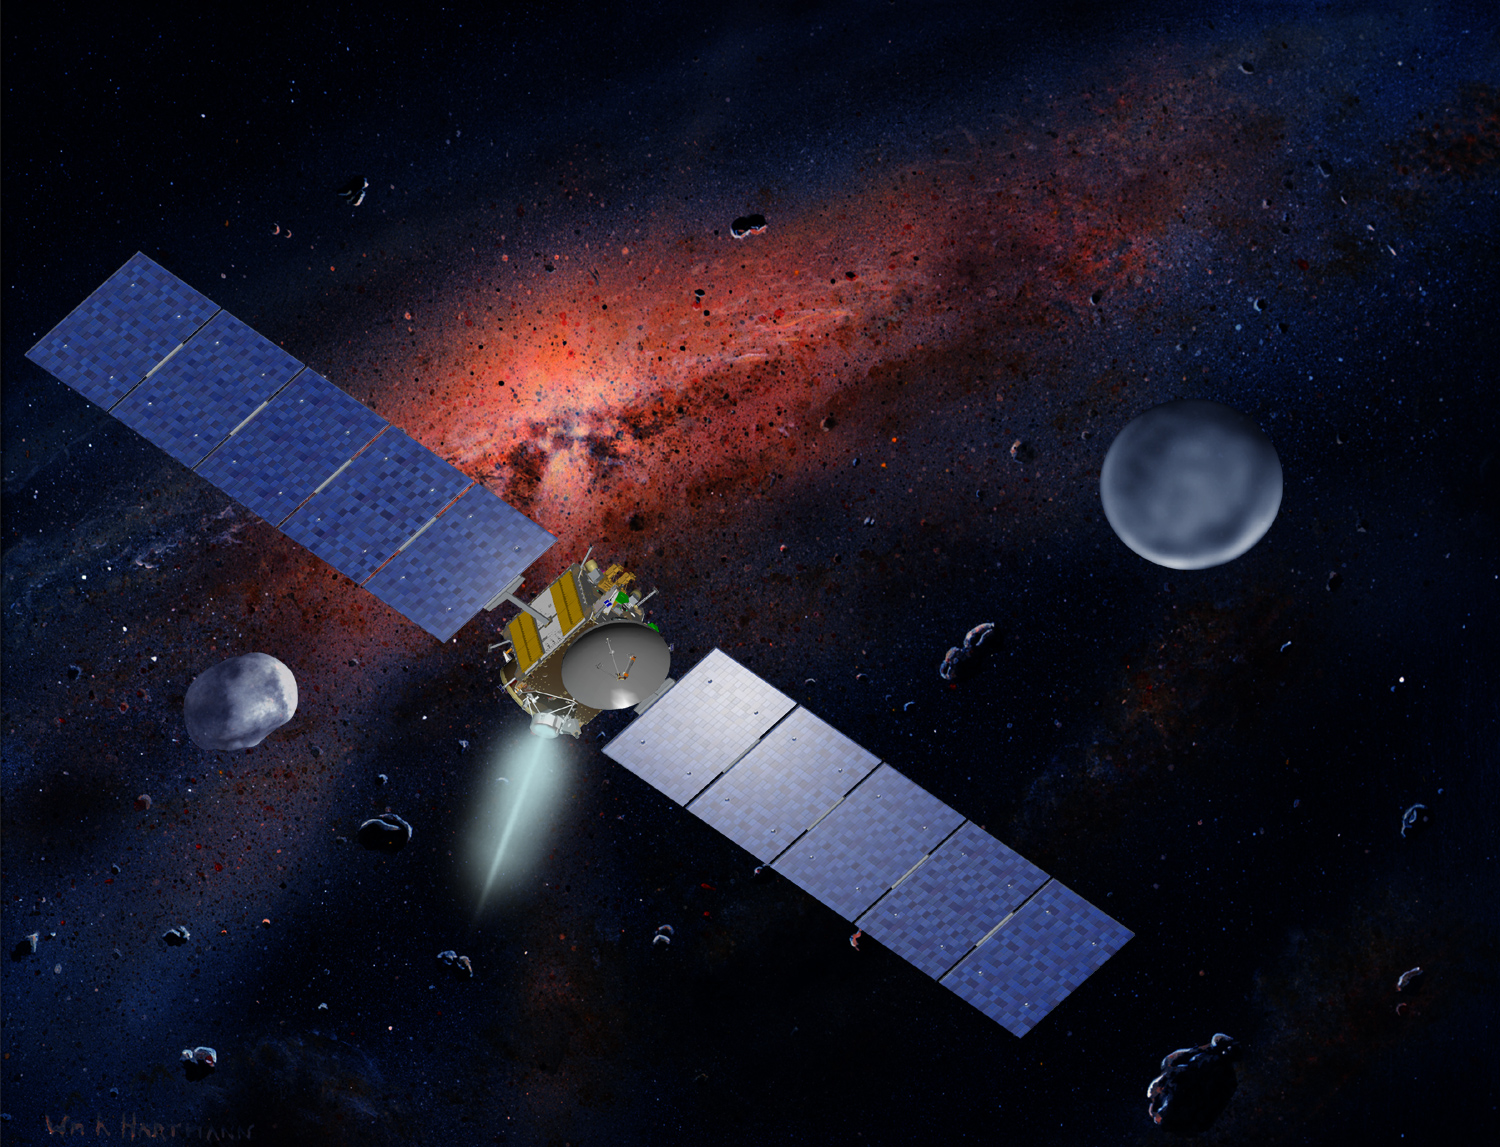 Artist's concept of NASA's Dawn spacecraft between the giant asteroid Vesta and the dwarf planet Ceres